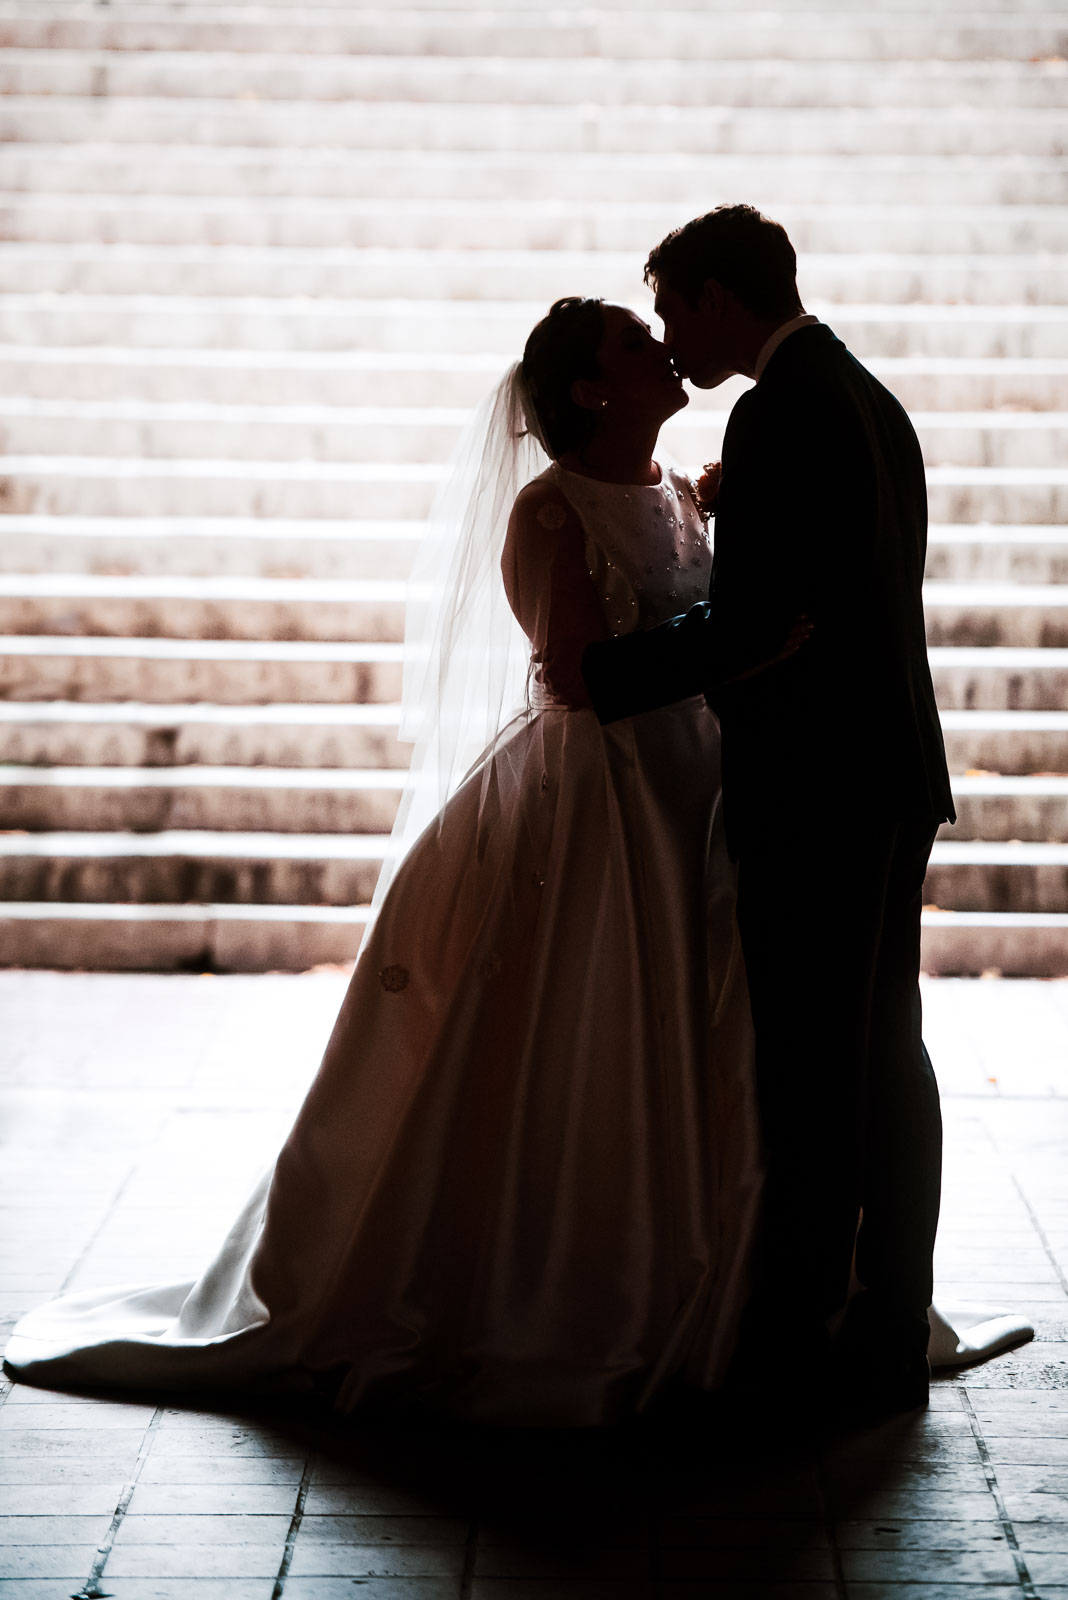 Bride and groom portrait on steps